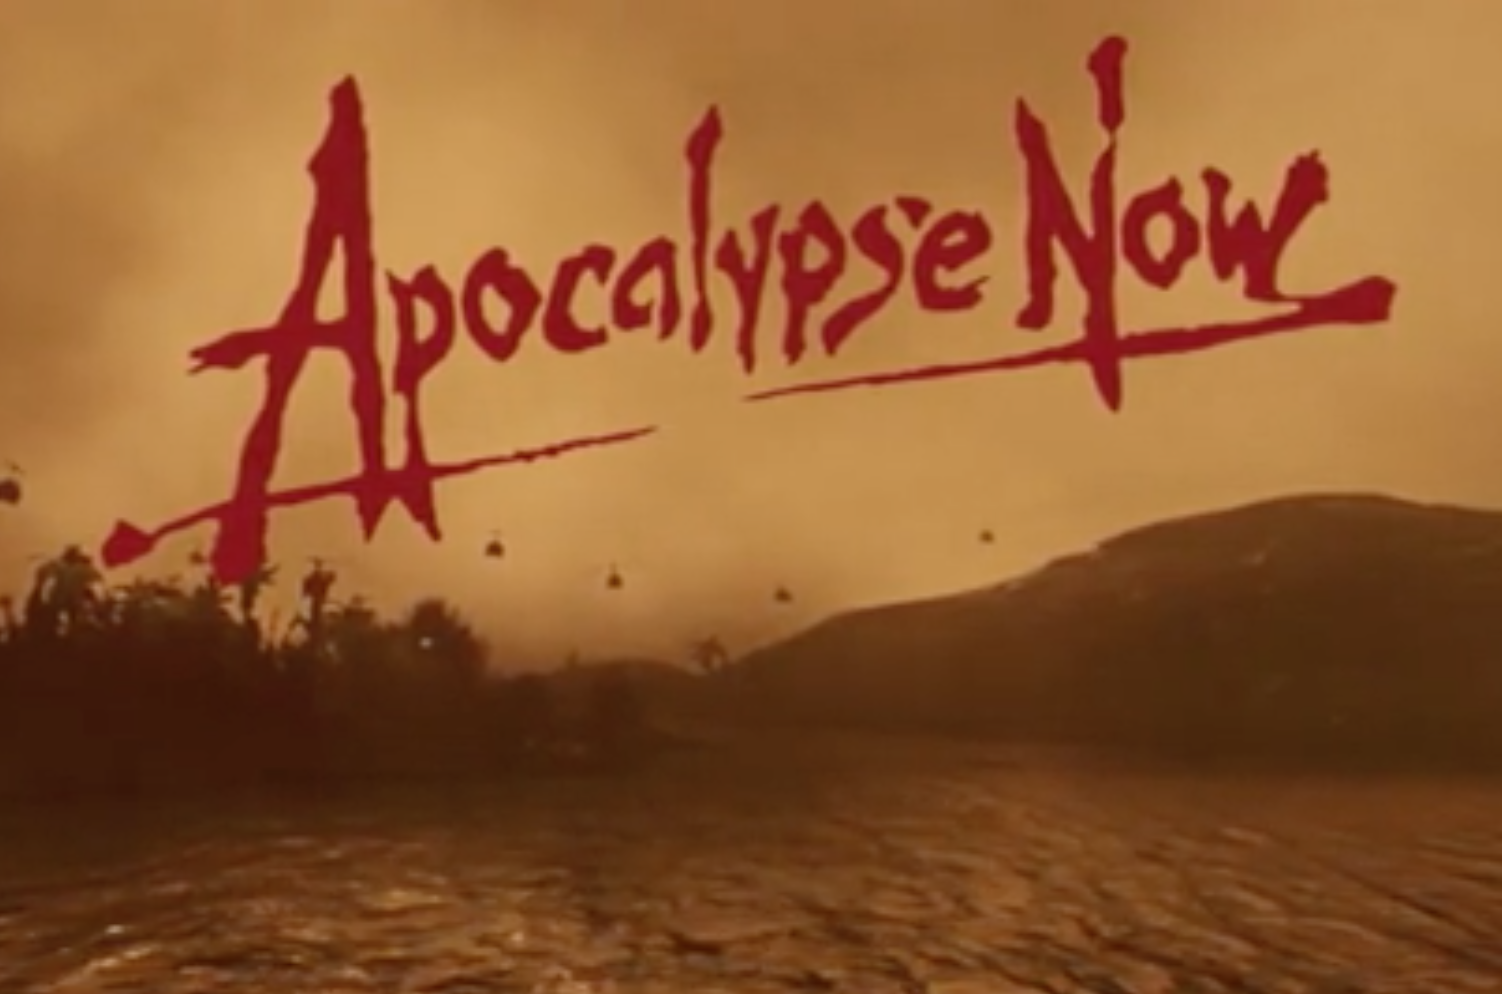 Francis Ford Coppola Is Trying to Crowdfund an Apocalypse Now Video Game